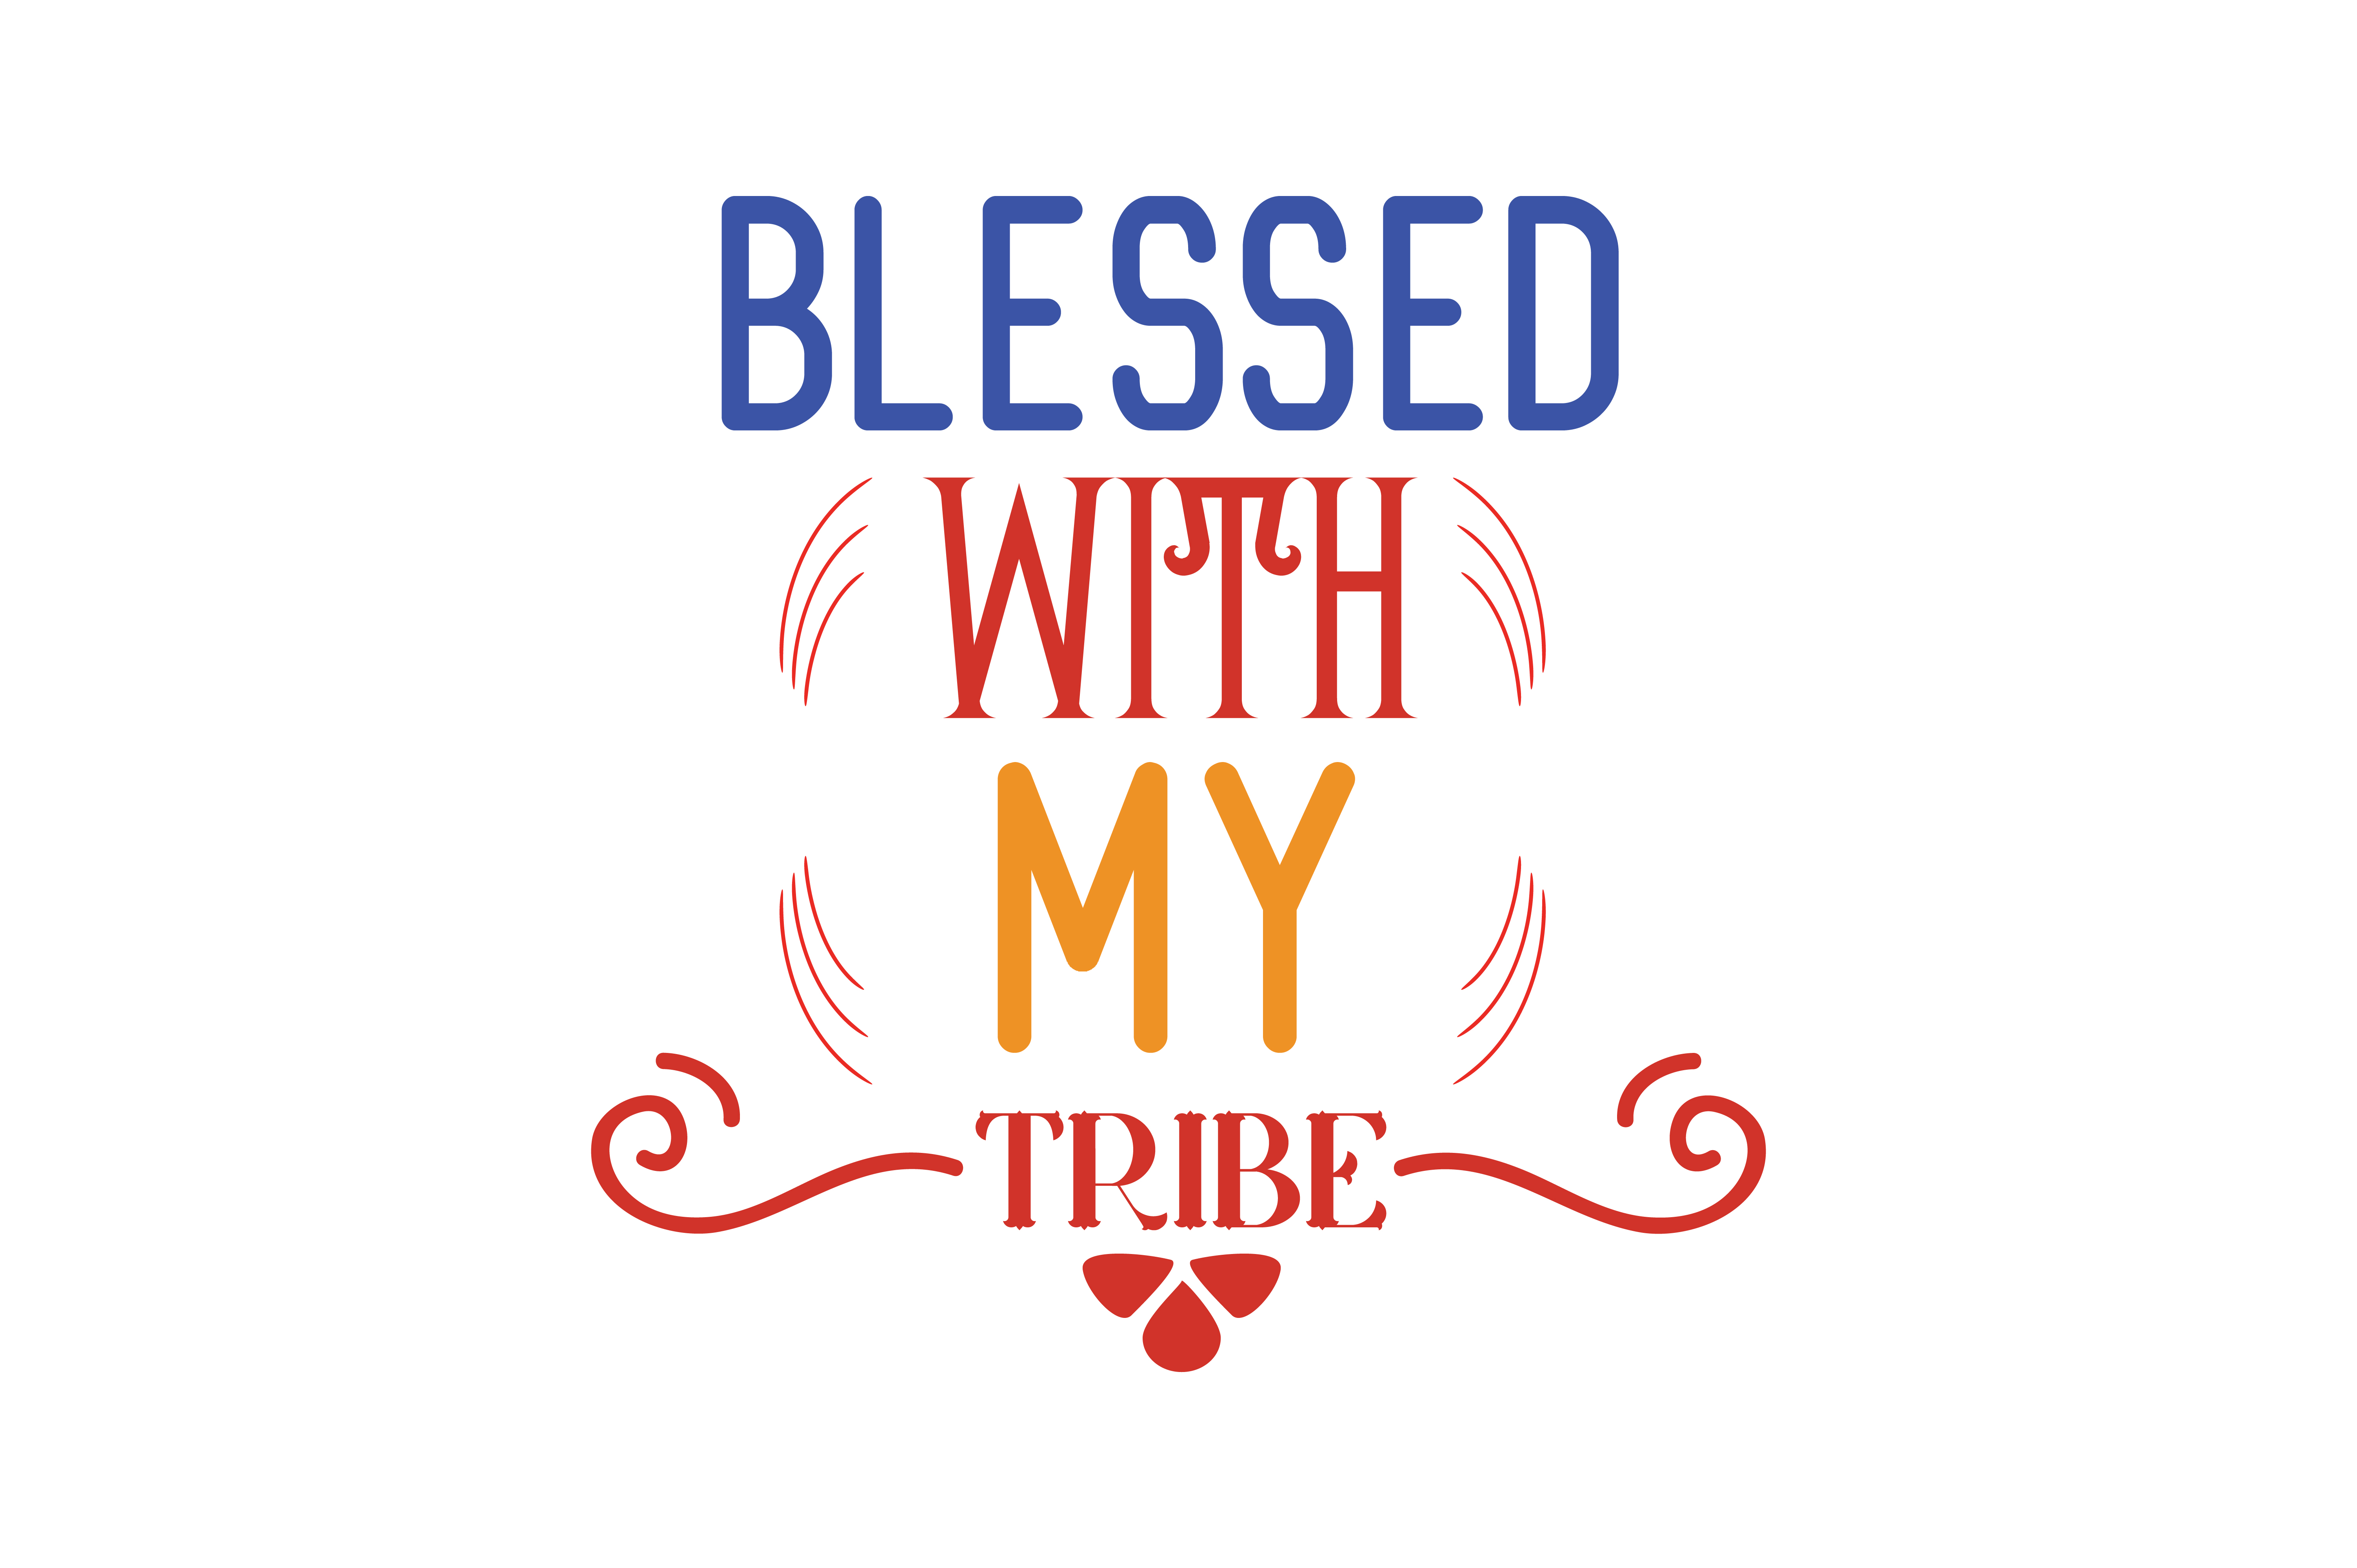 Download Free Blessed With My Tribe Quote Svg Cut Grafik Von Thelucky for Cricut Explore, Silhouette and other cutting machines.